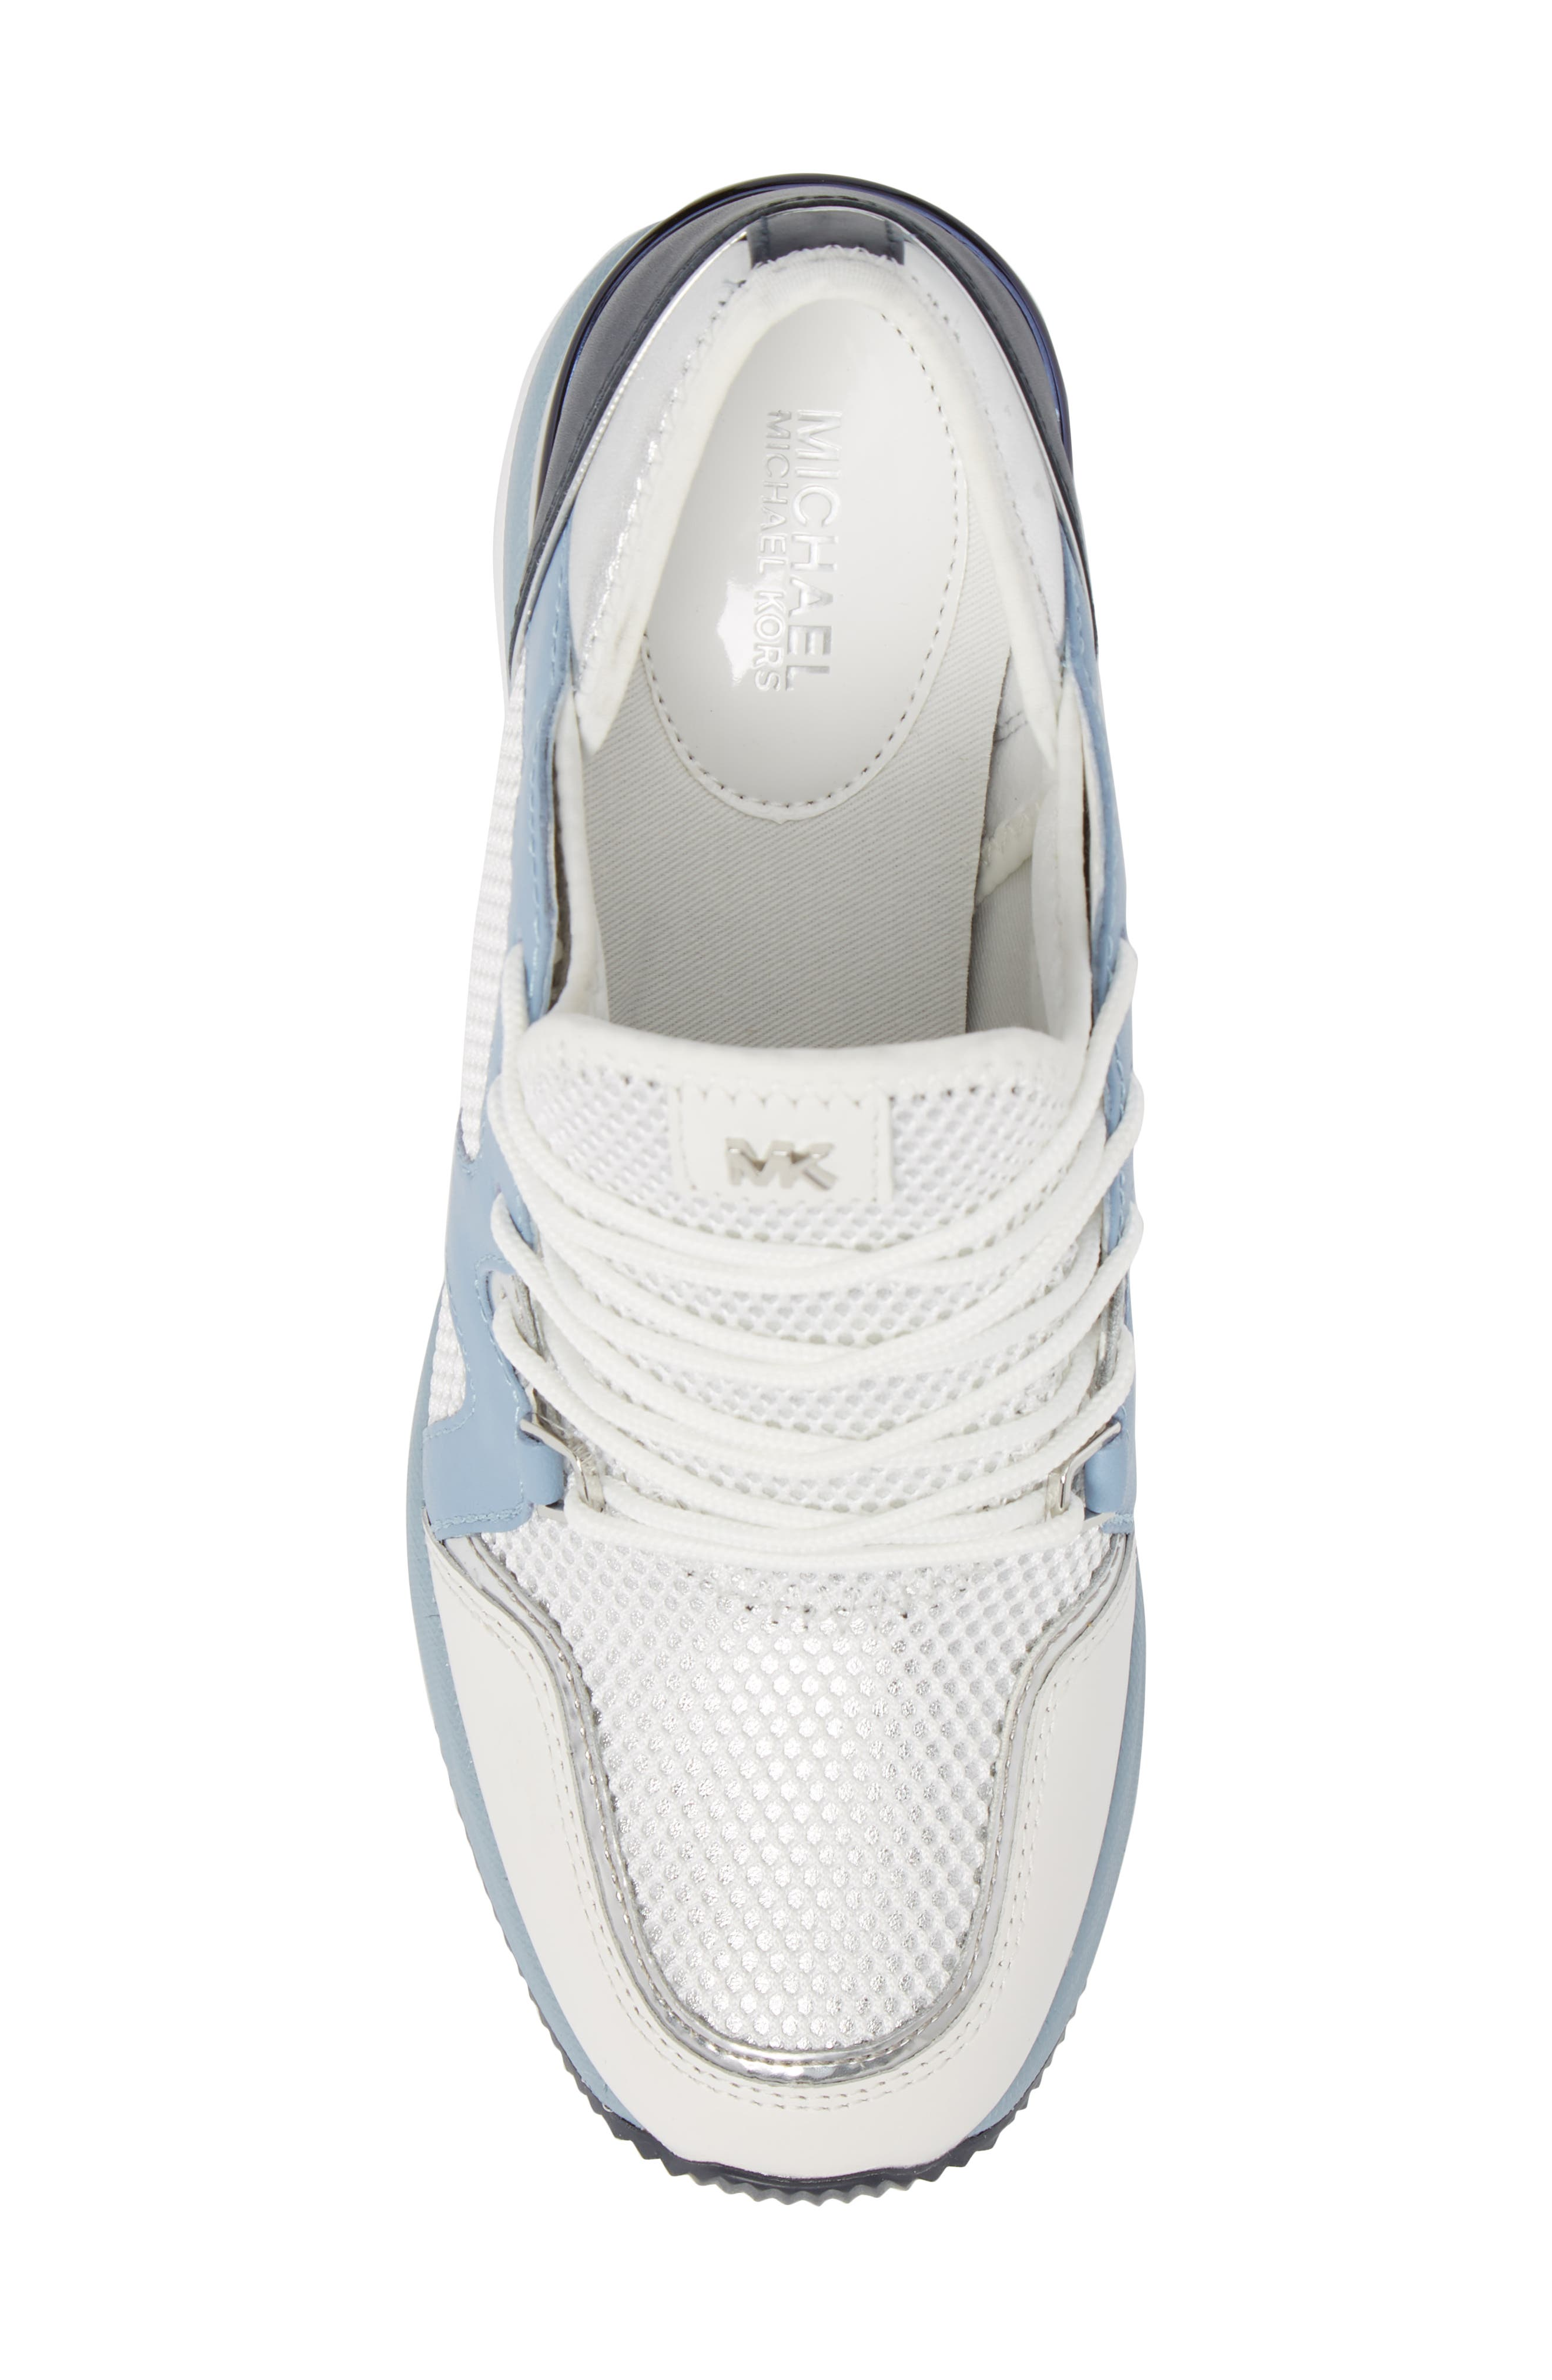 Scout Wedge Sneaker,                             Alternate thumbnail 6, color,                             Optic White/Blue